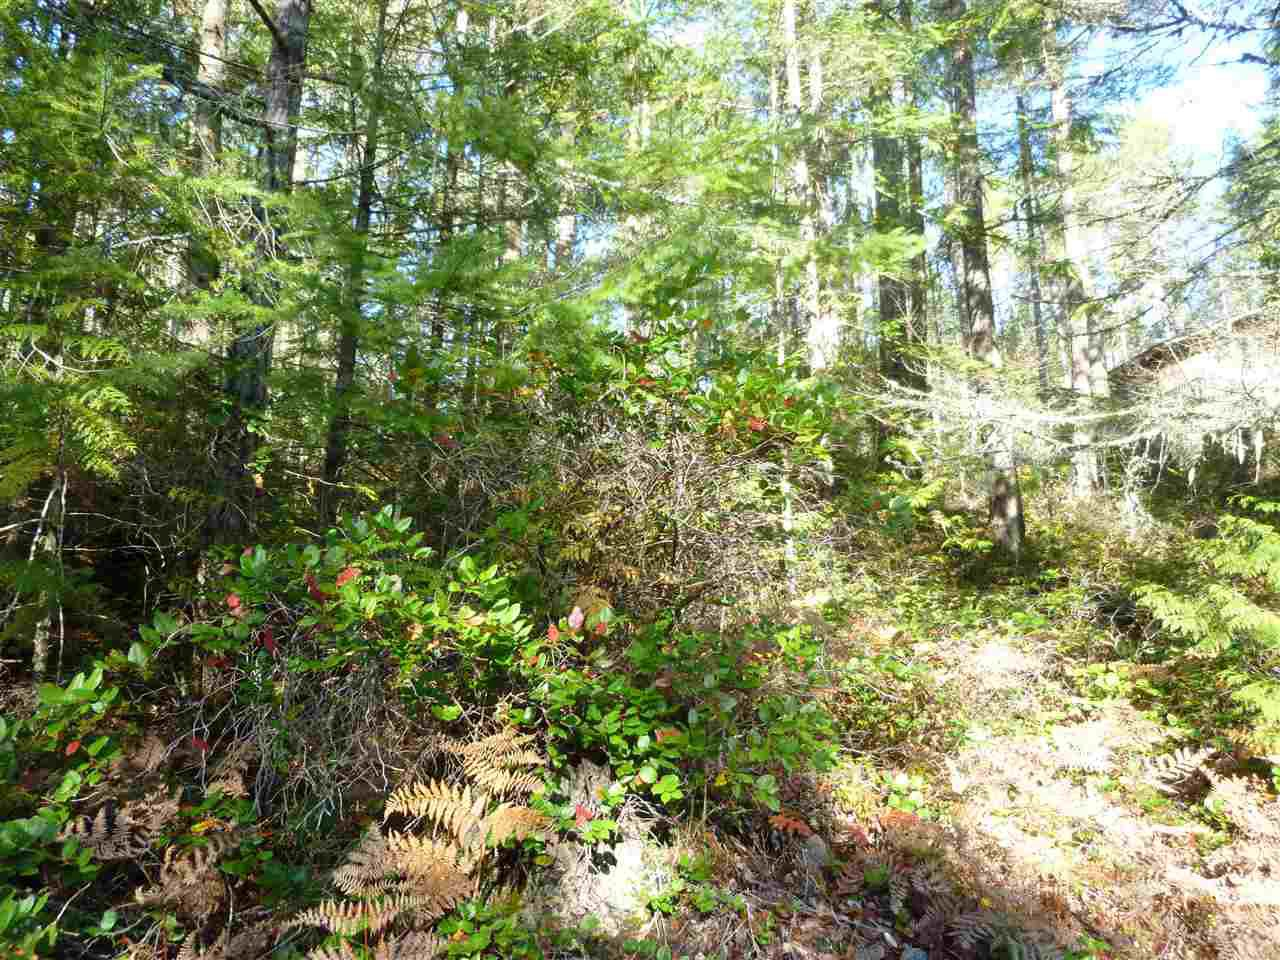 Main Photo:  in Pender Harbour: Pender Harbour Egmont Land for sale (Sunshine Coast)  : MLS®# R2414999